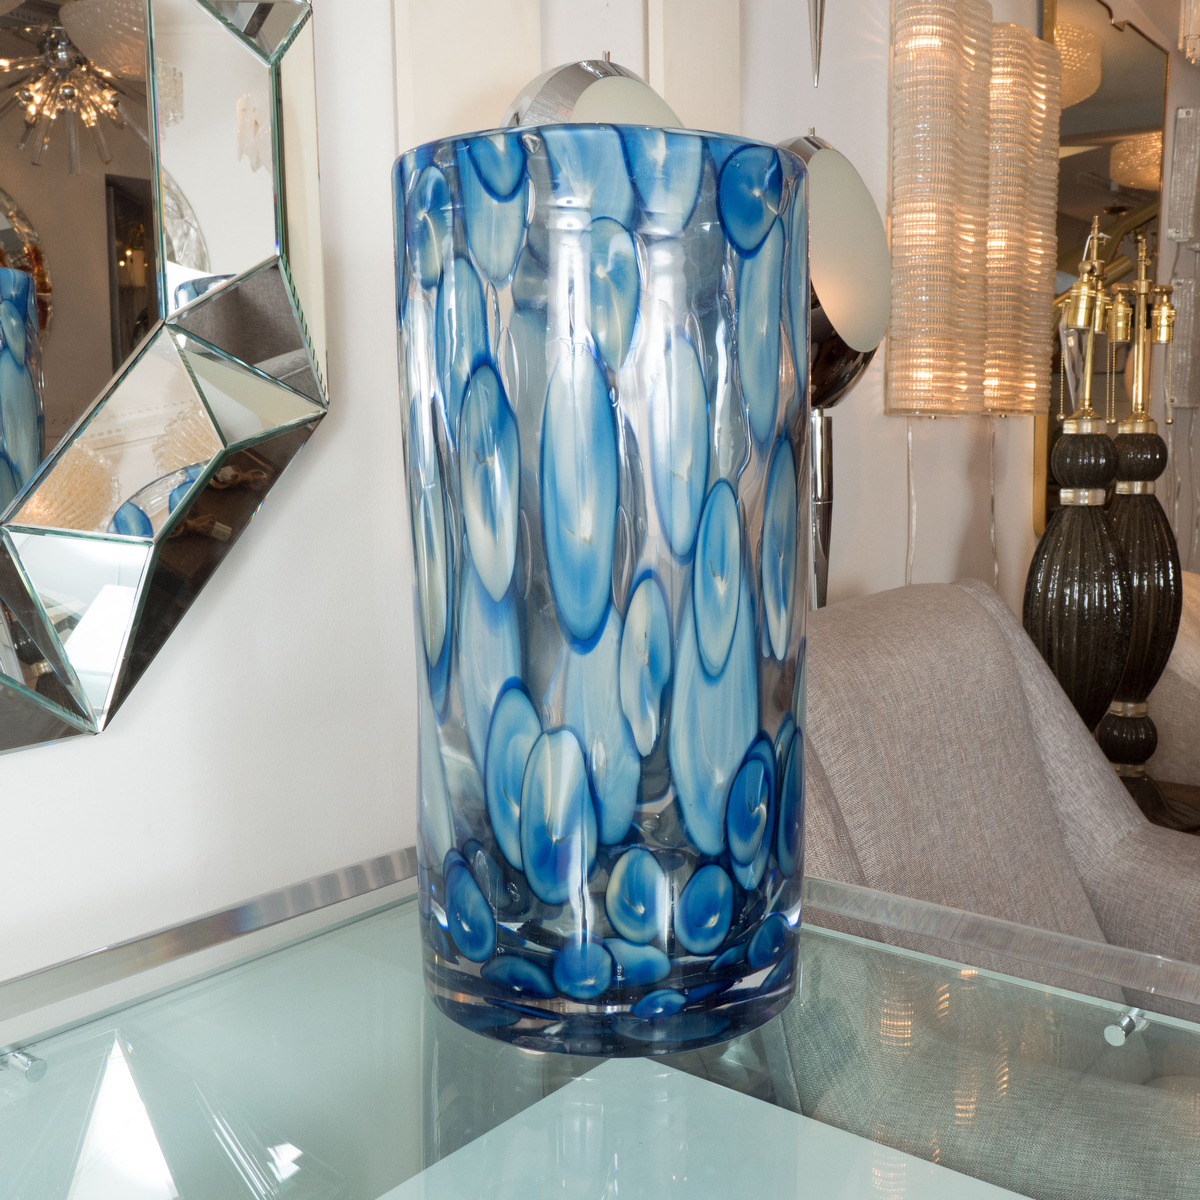 Cylindrical Murano Glass Vase With Blue And White Dot Design Vases John Salibello